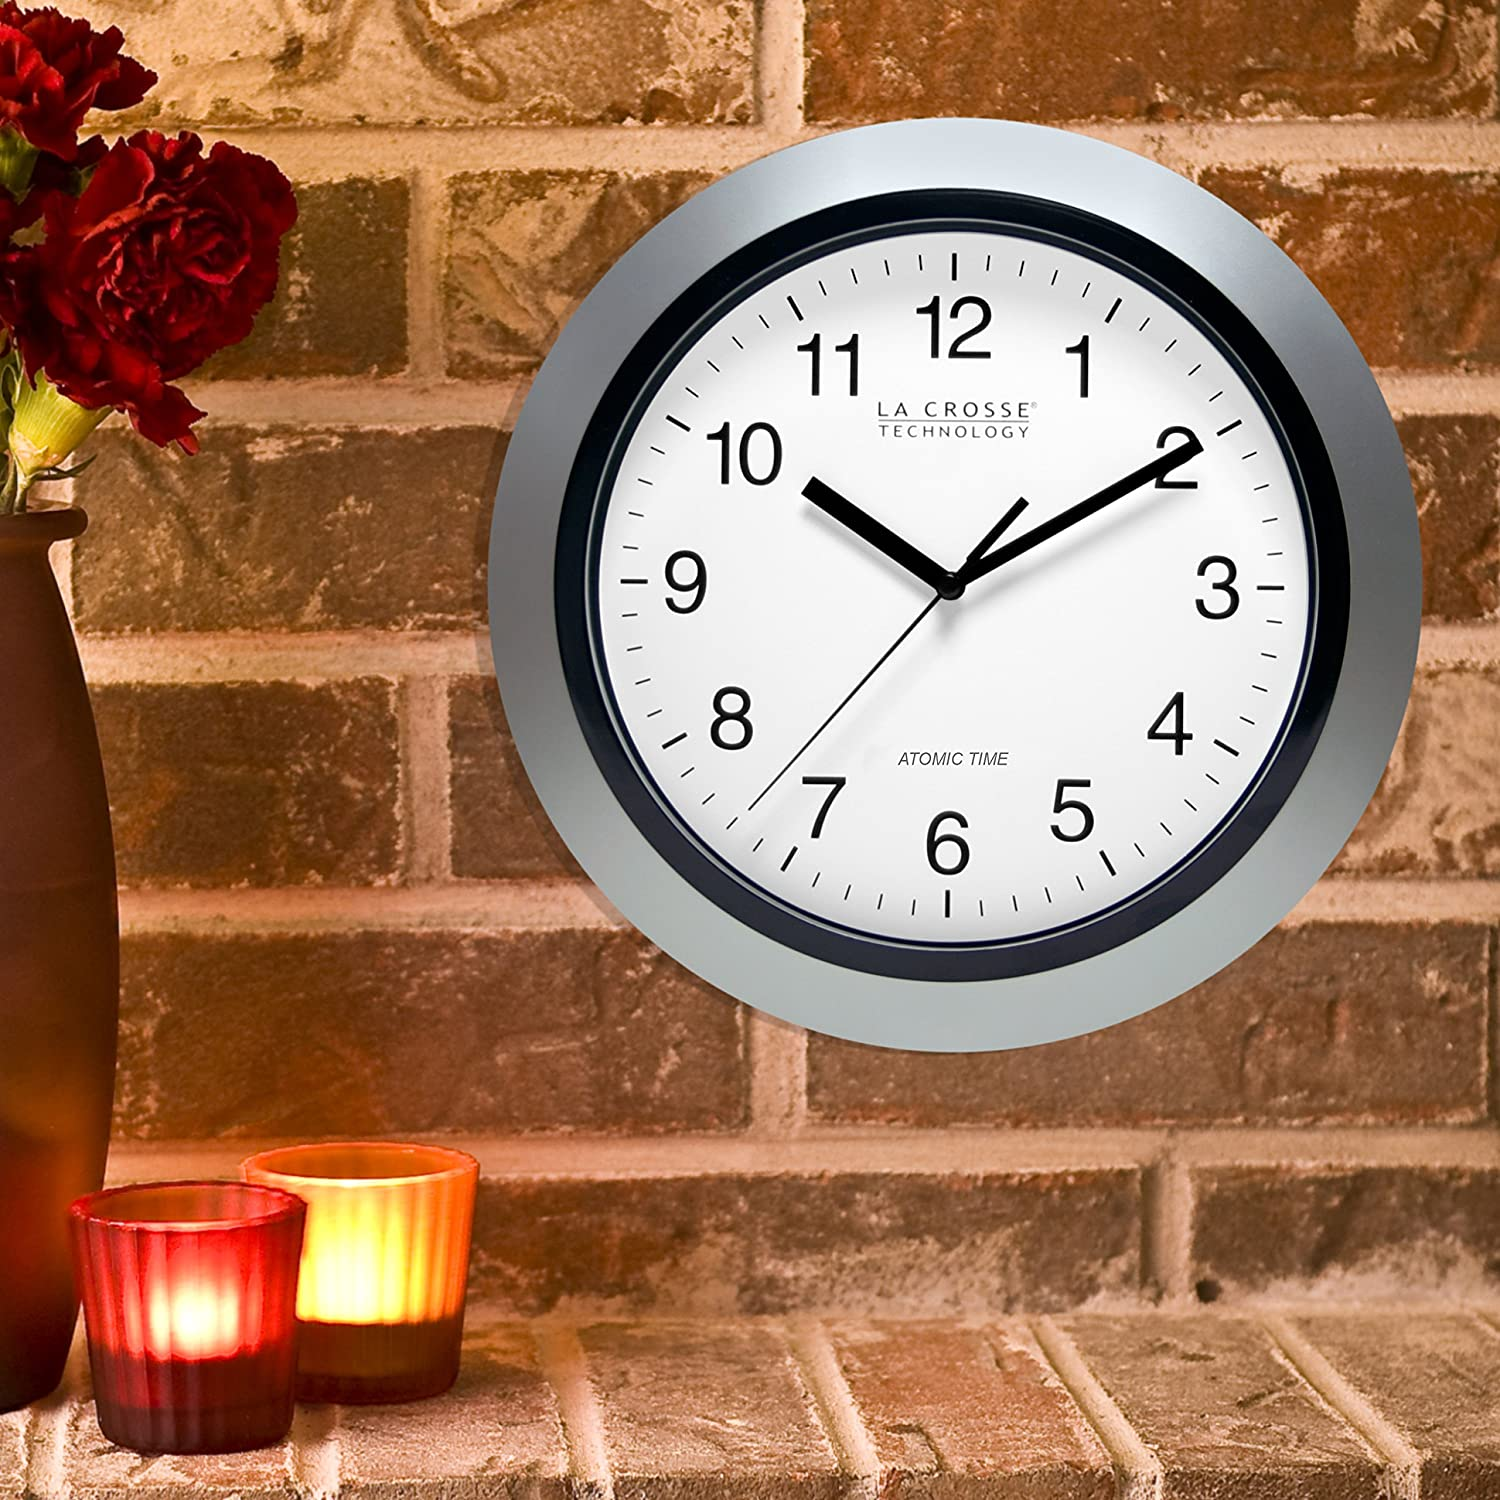 Amazon la crosse technology wt 3102s 10 inch atomic analog amazon la crosse technology wt 3102s 10 inch atomic analog wall clock silver home kitchen amipublicfo Gallery